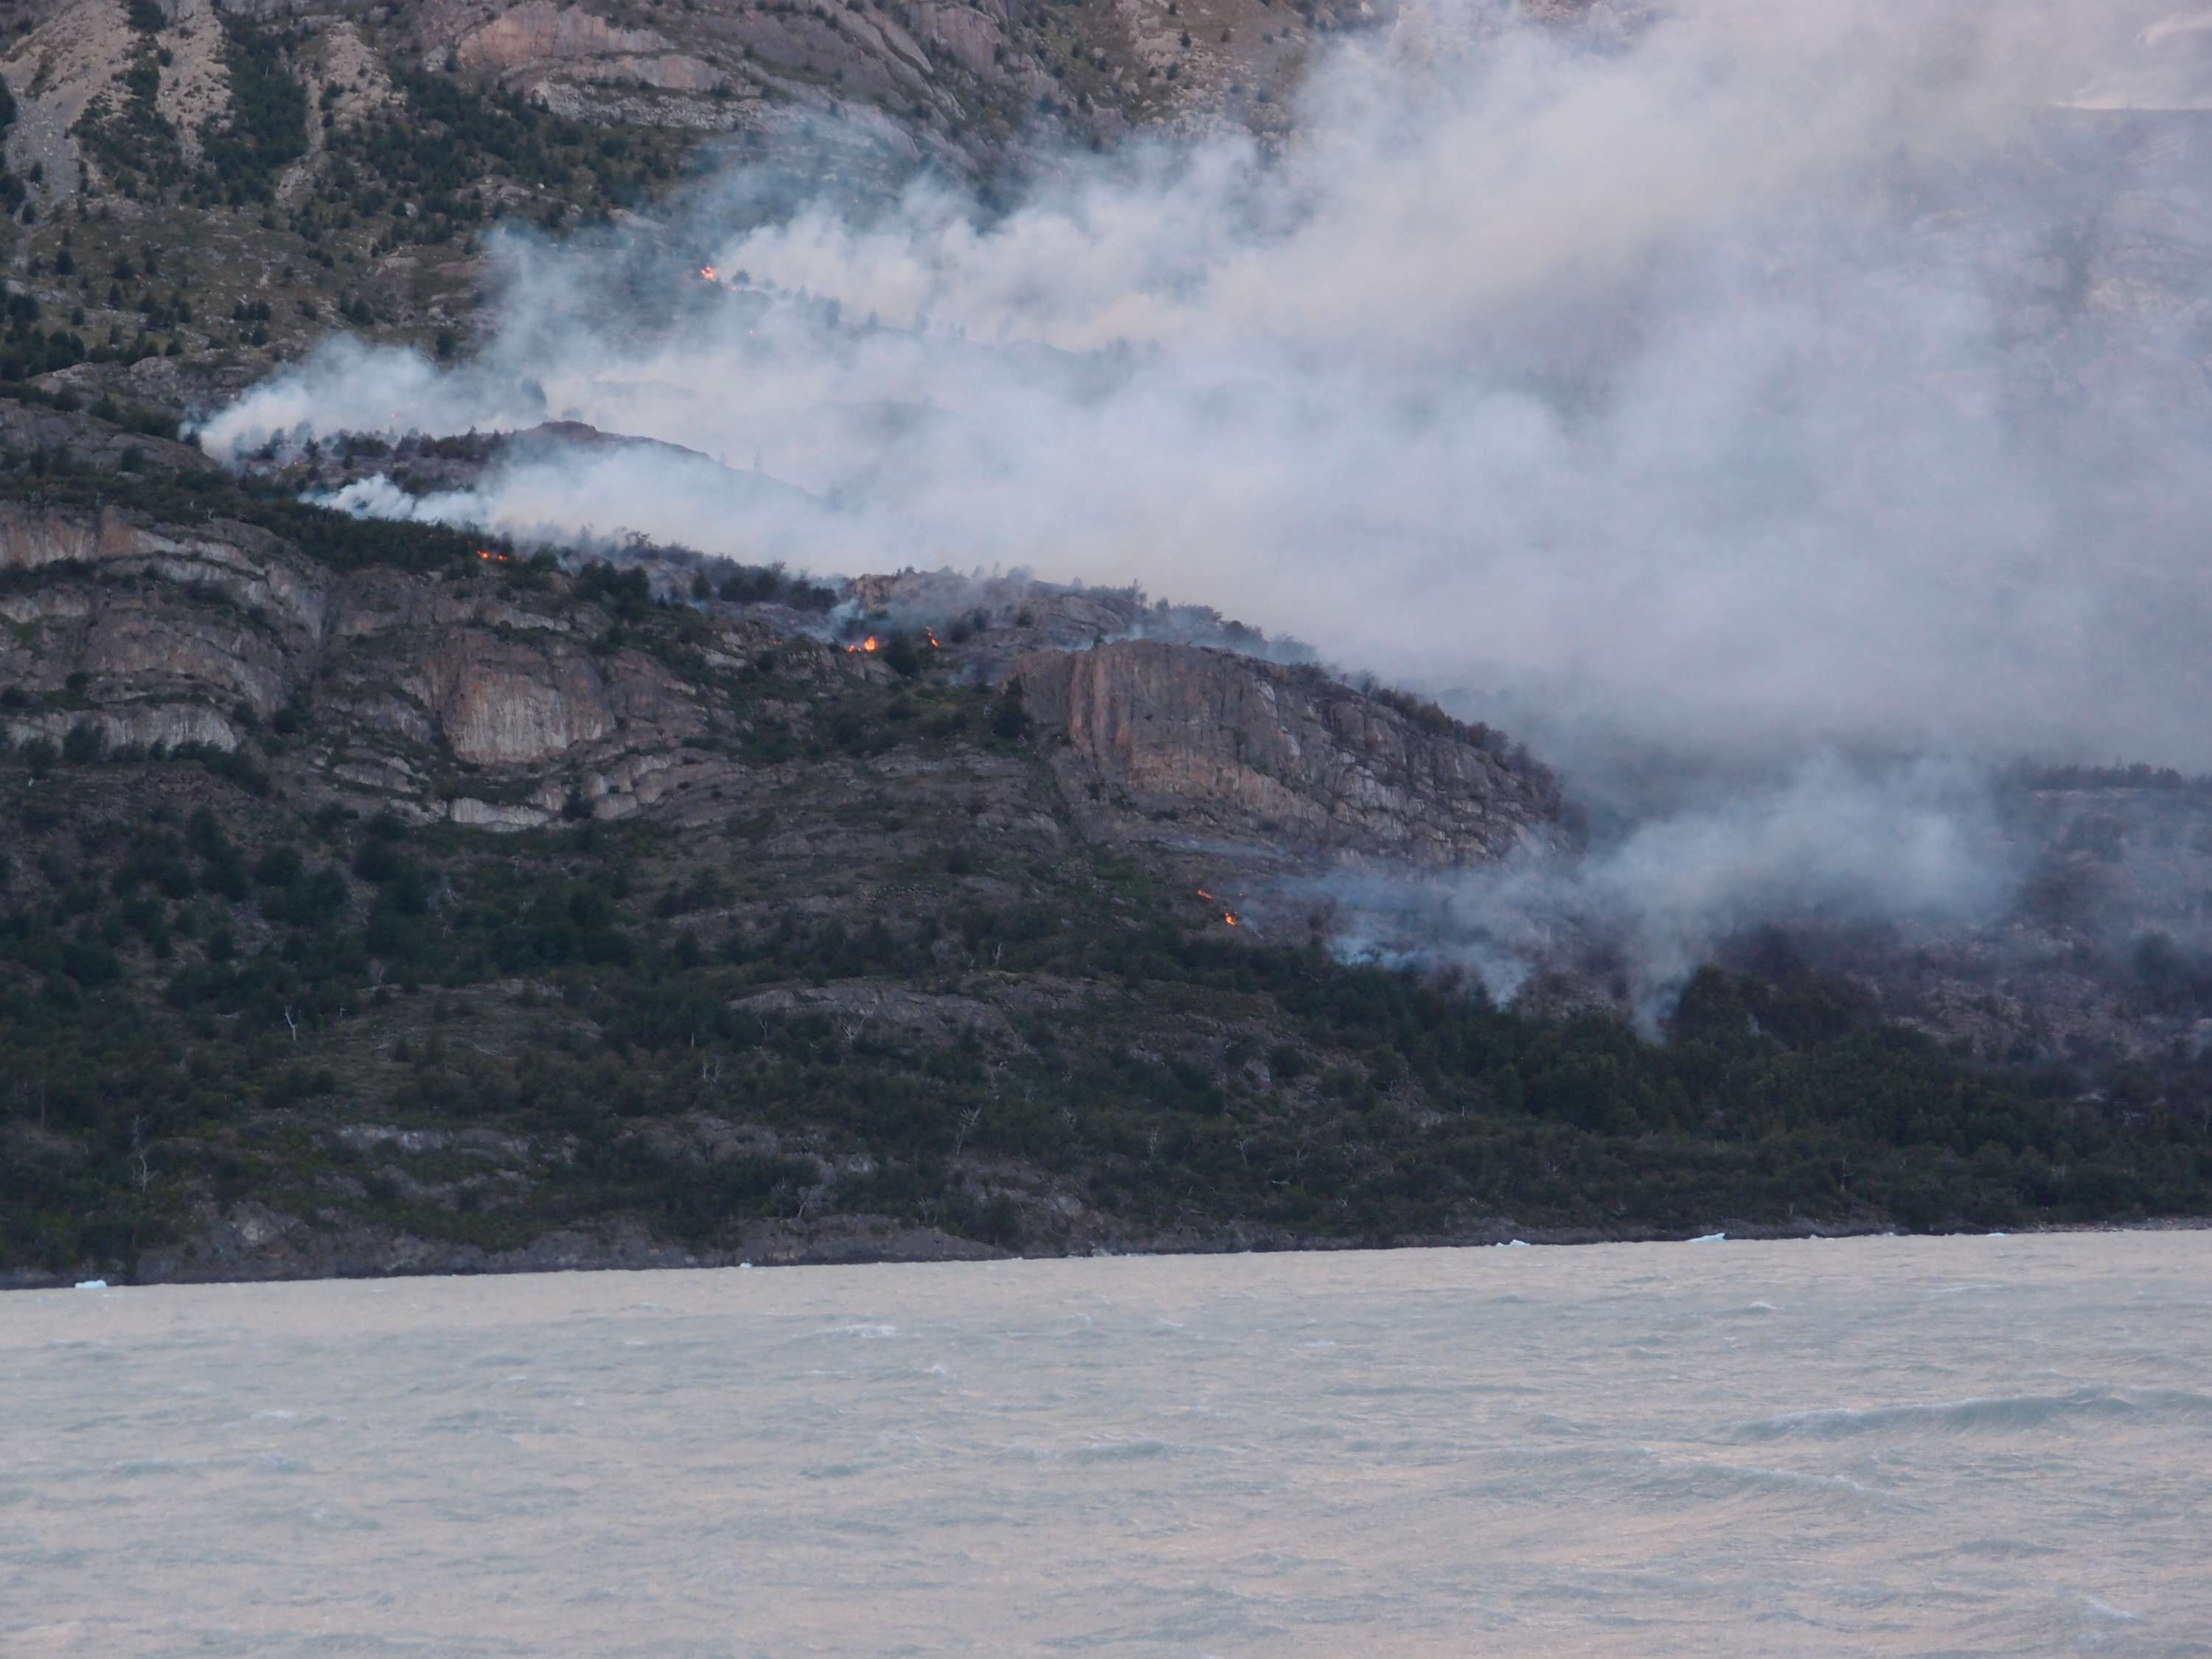 Torres del Paine fire from ferry during evacuation